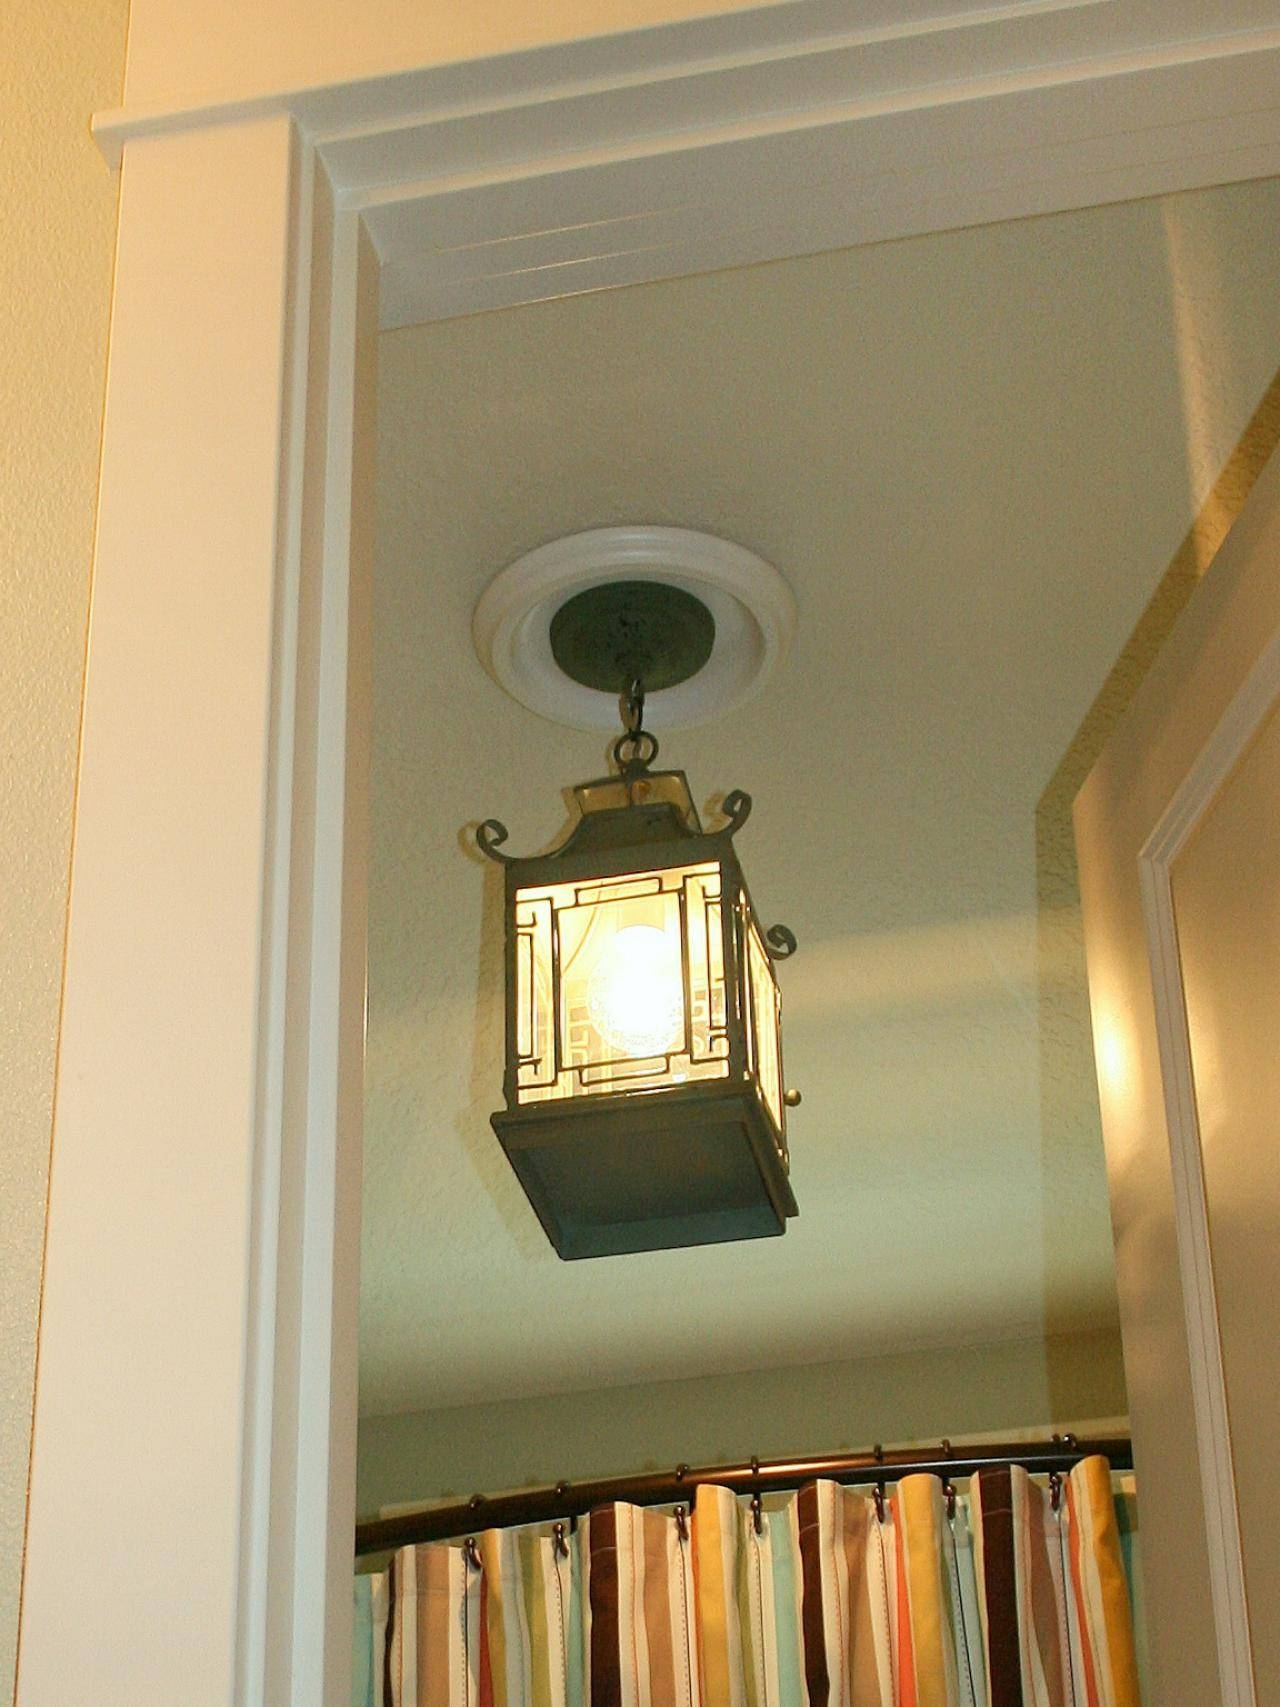 Replace Recessed Light With A Pendant Fixture | Hgtv throughout Installing Pendant Light Fixtures (Image 14 of 15)